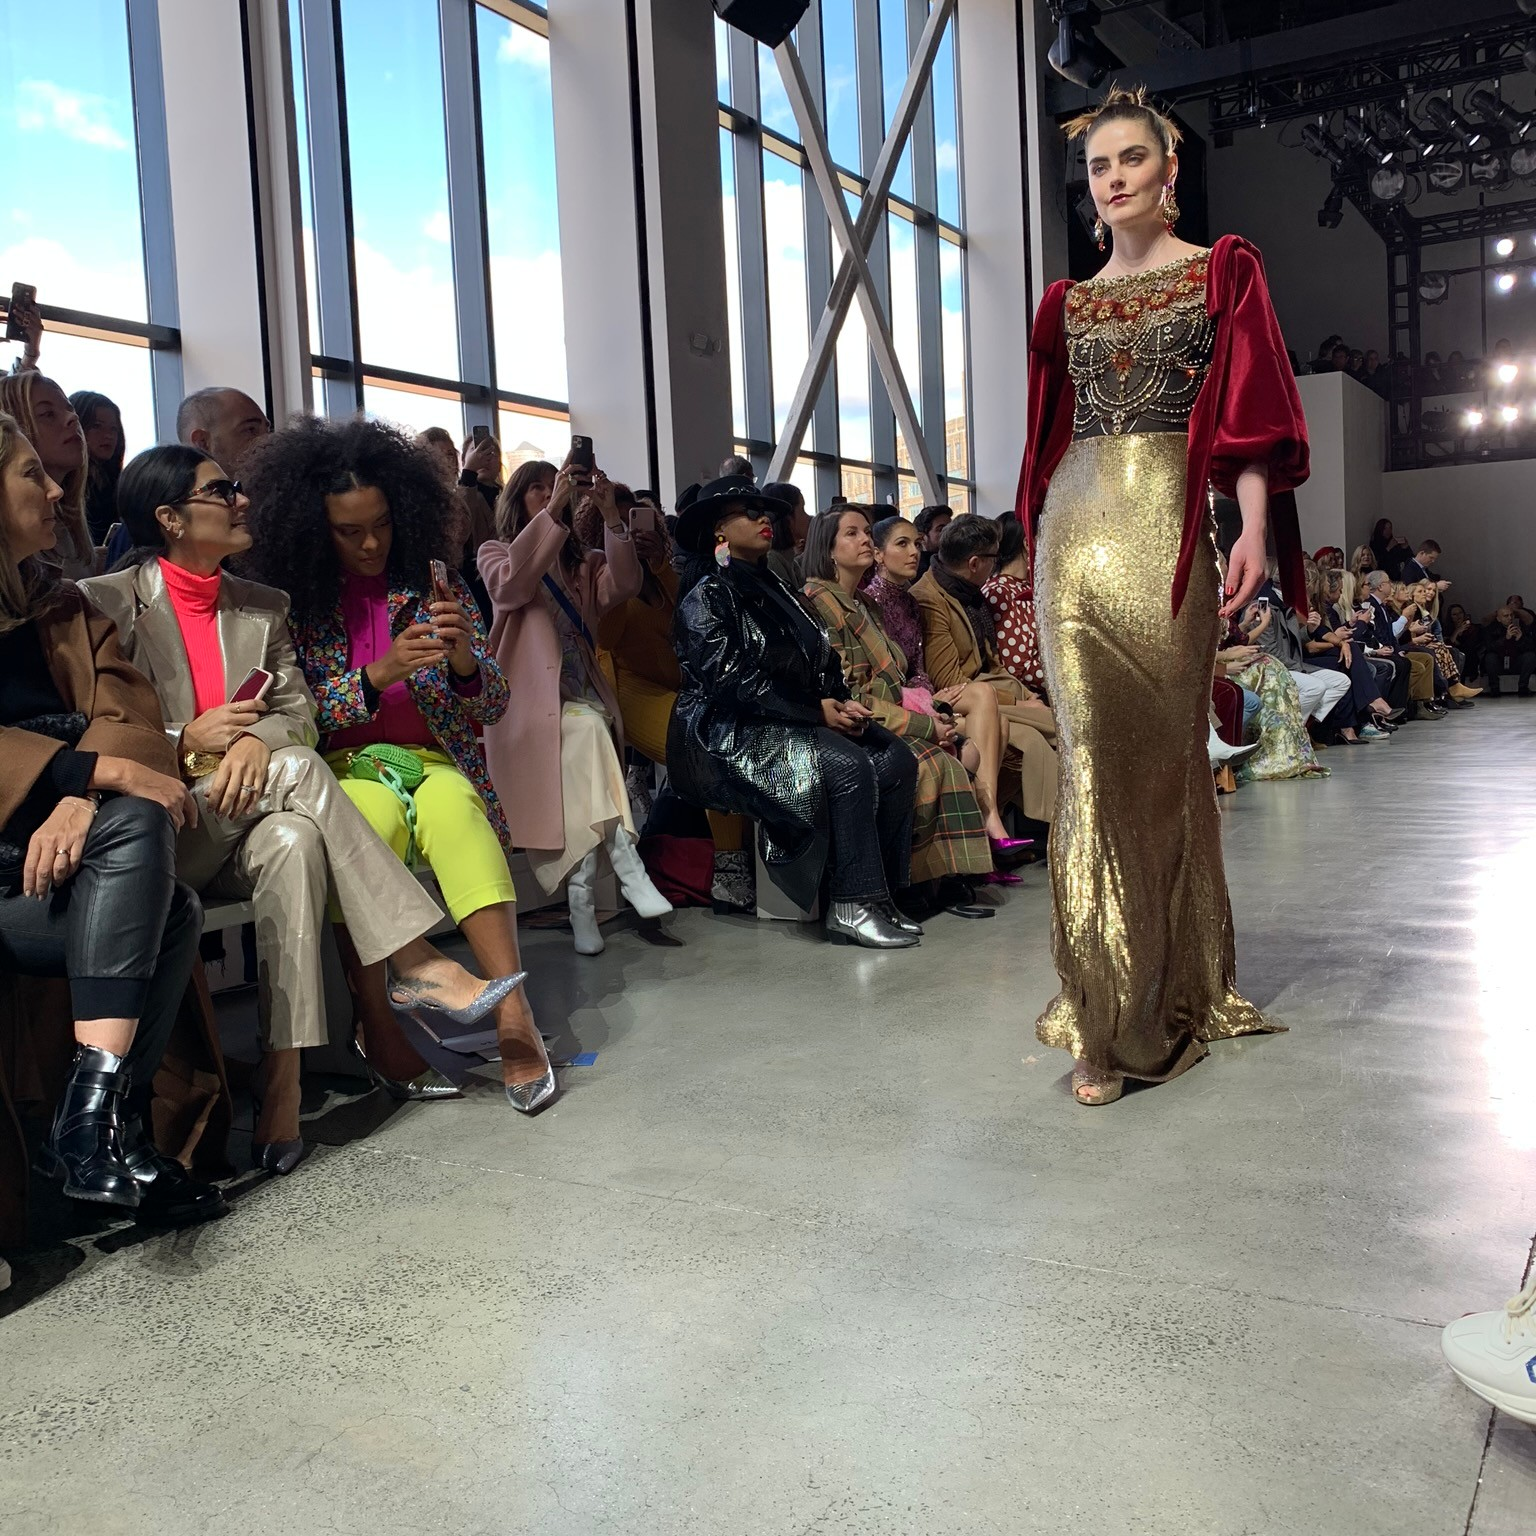 Covet Fashion Made Me Feel I Belonged At New York Fashion Week